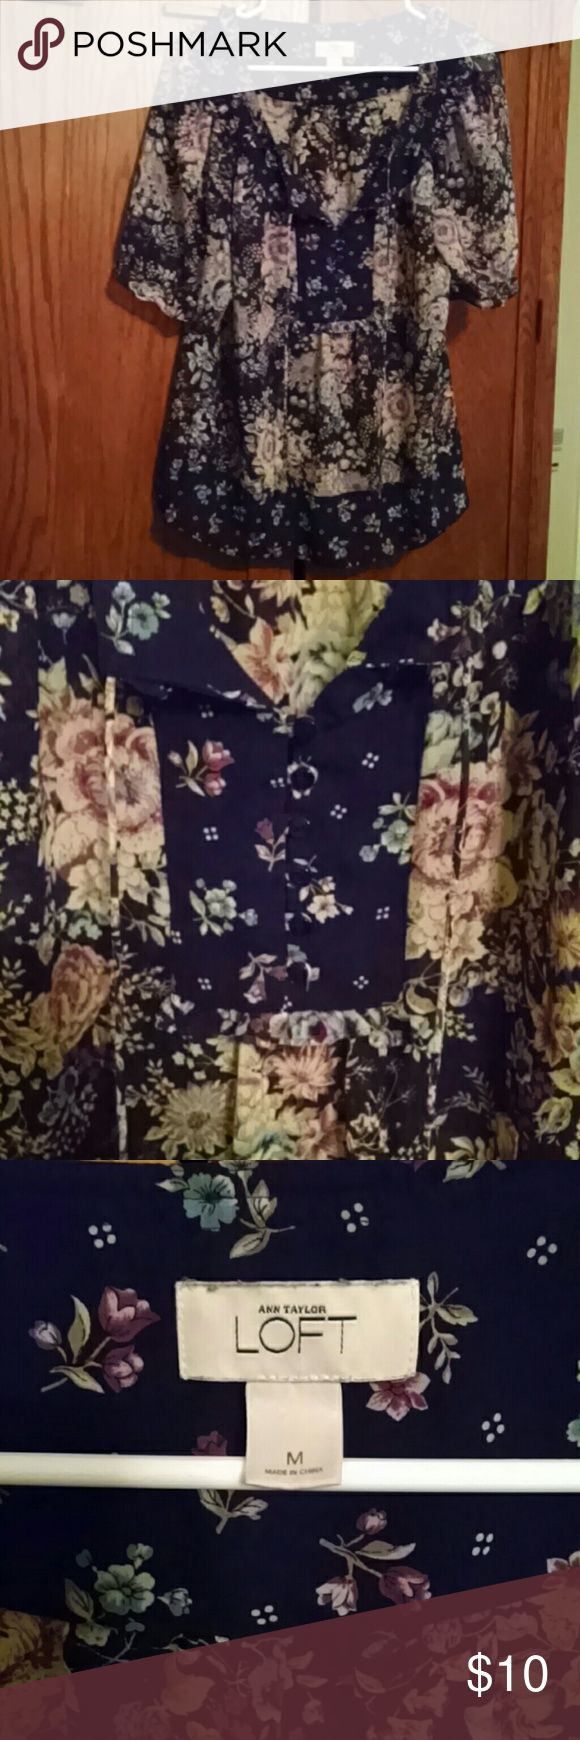 Anne Taylor Loft floral blouse This top is a sheer floral  fabric. It is navy blue with lighter blue and purple flowers. There is a 6 button and tie detail on the front. In very good used condition. LOFT Tops Blouses